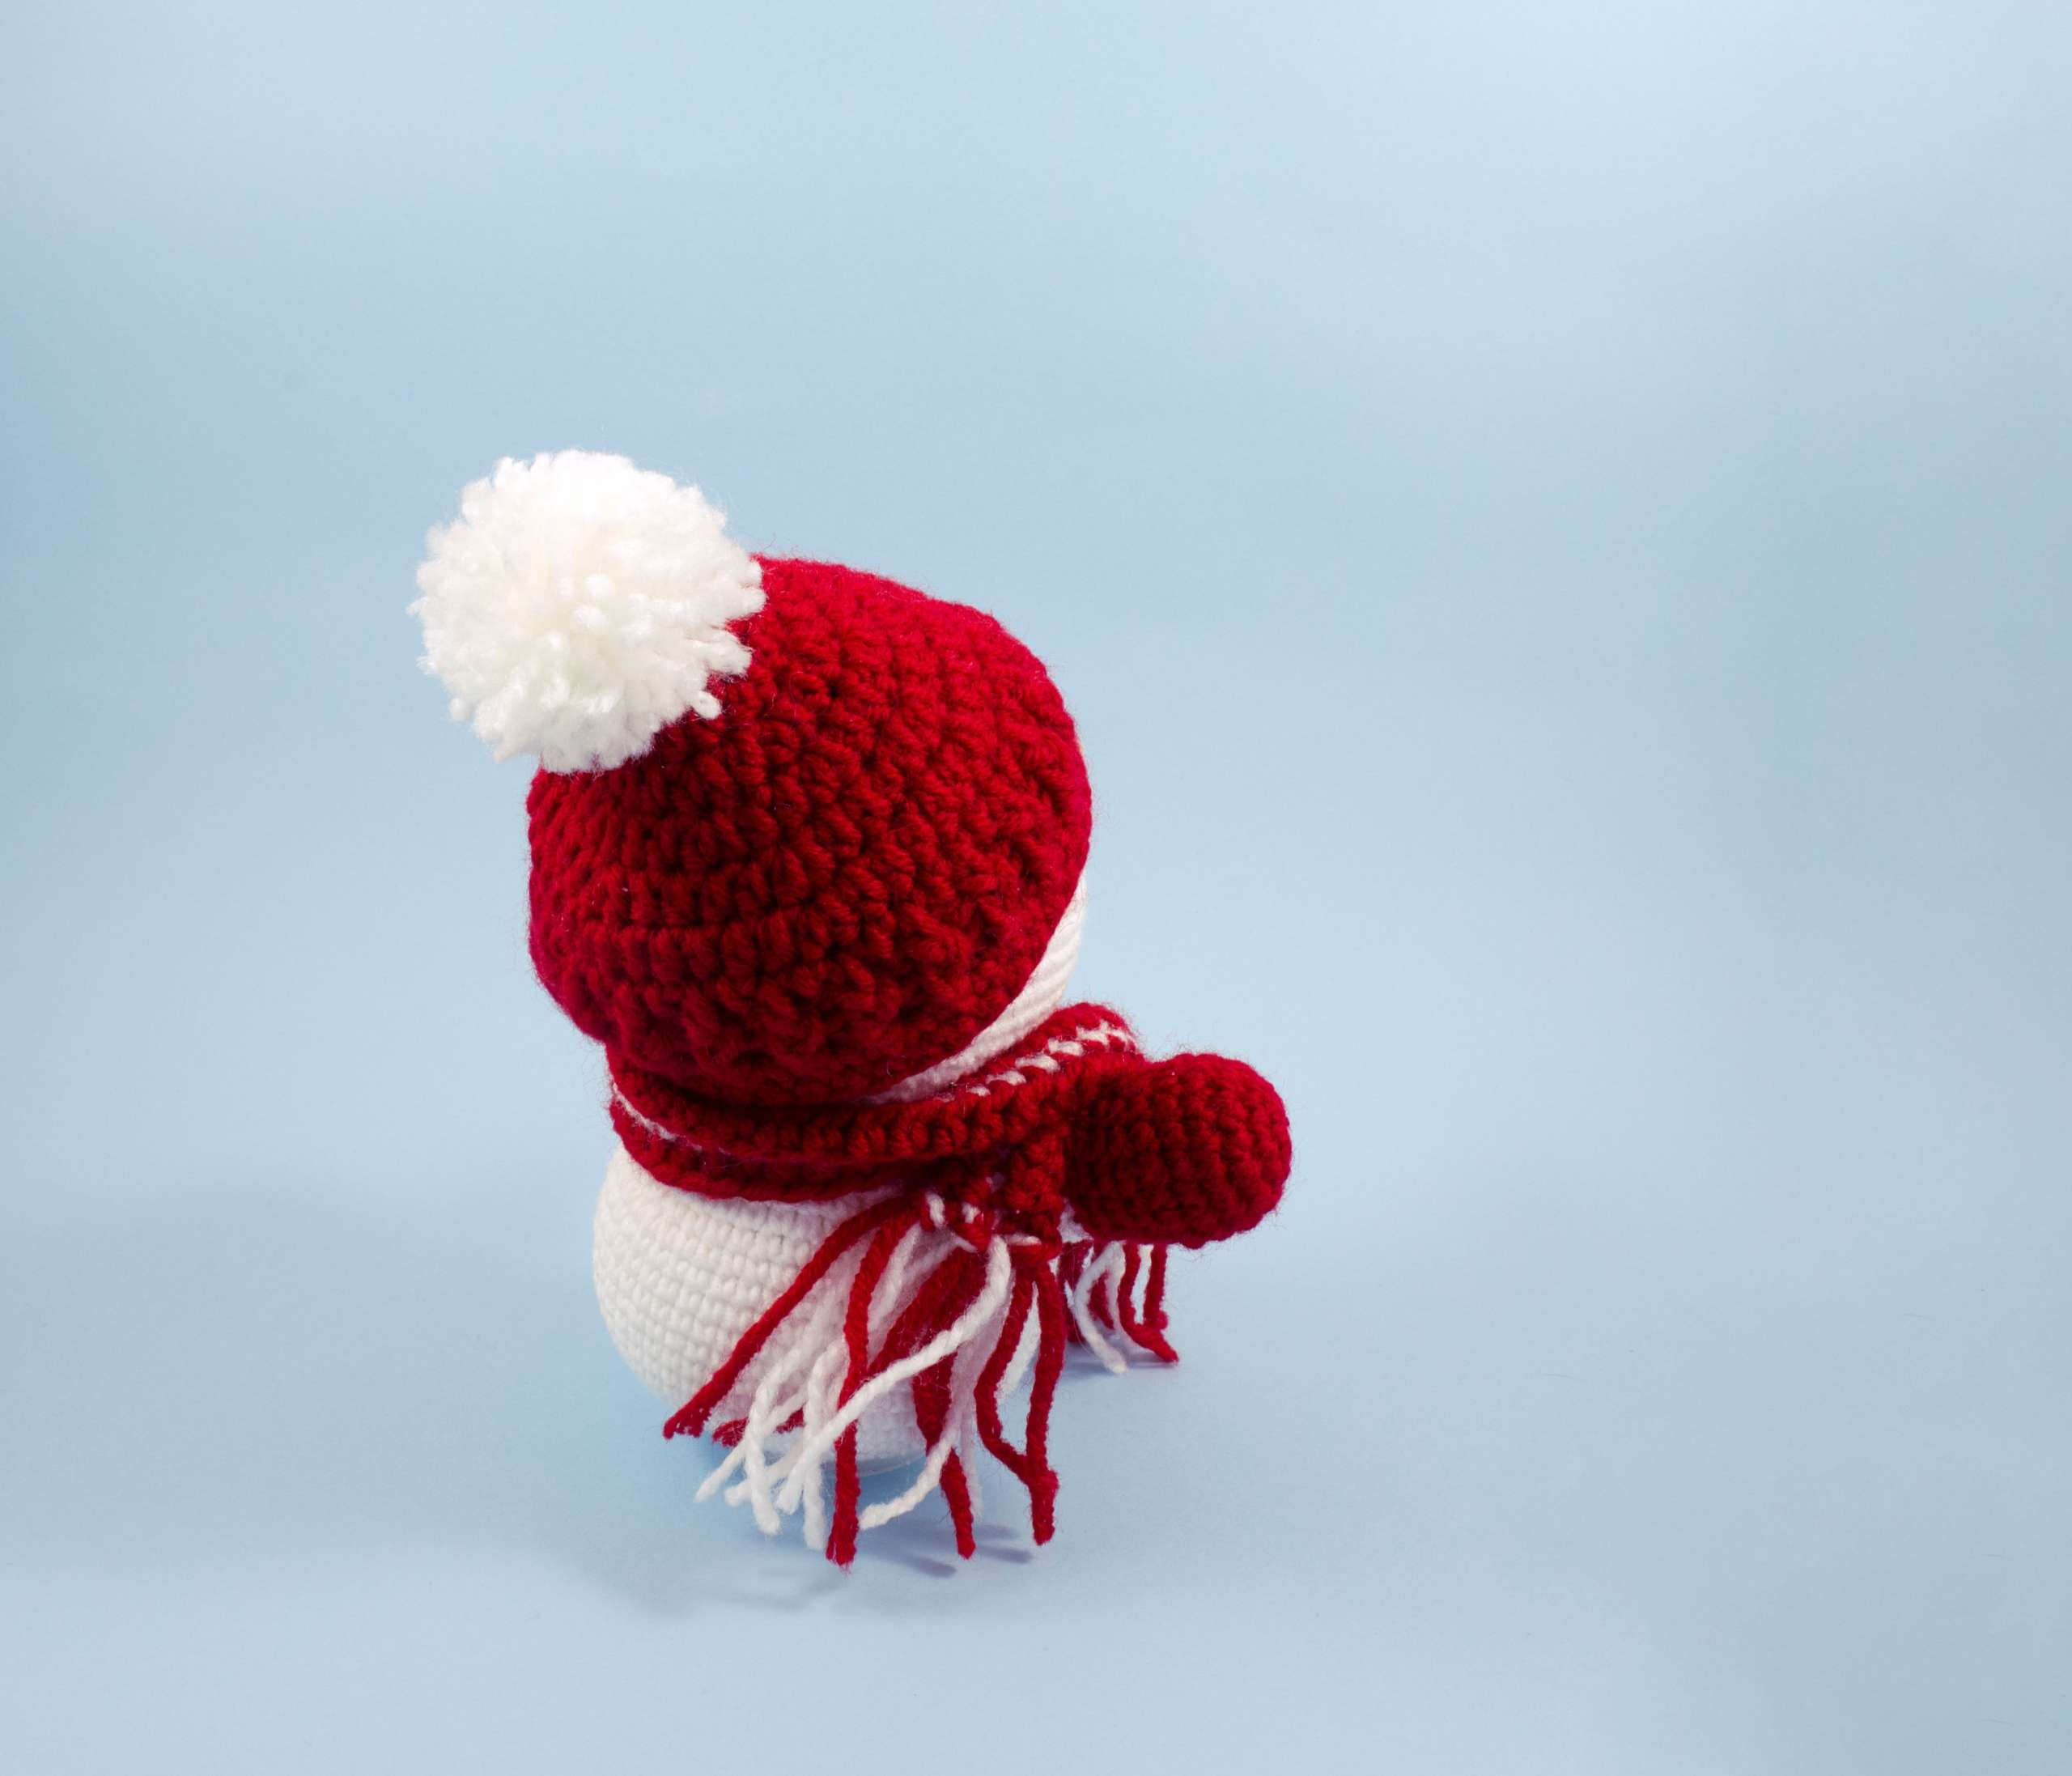 crochet snowman back view